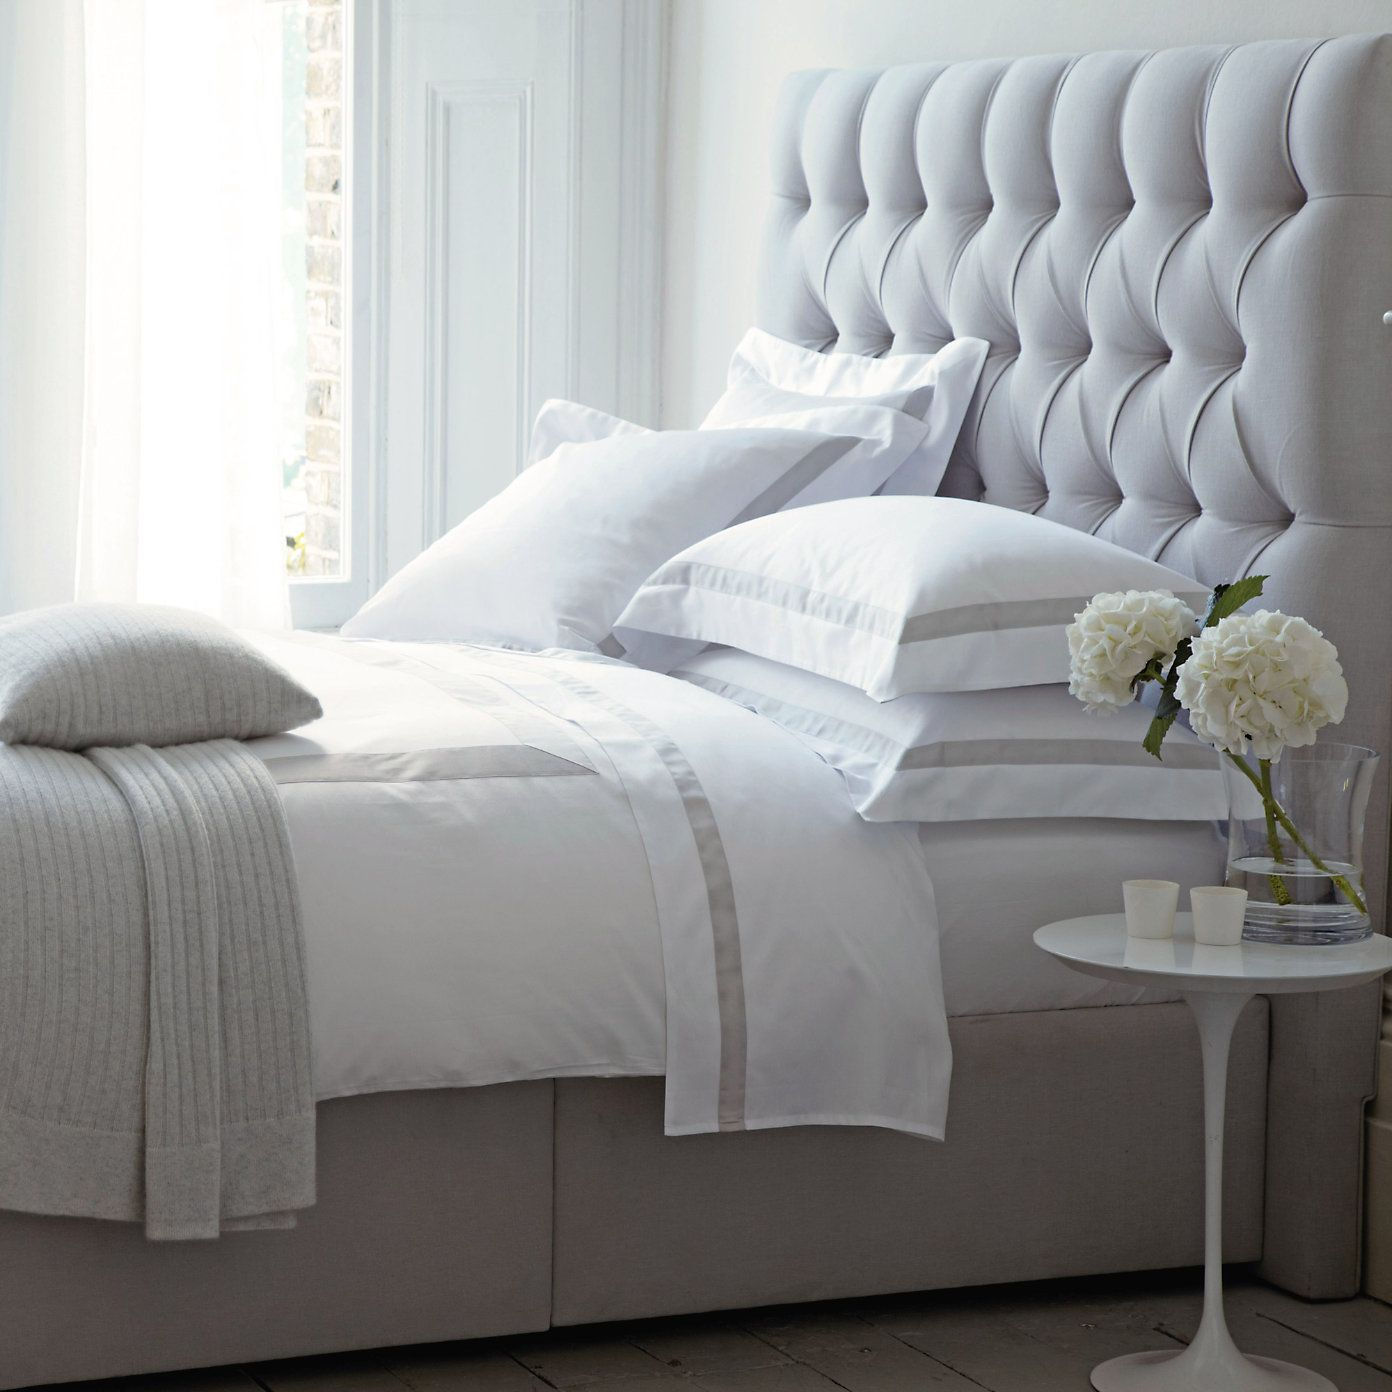 Richmond Bed From The White Company